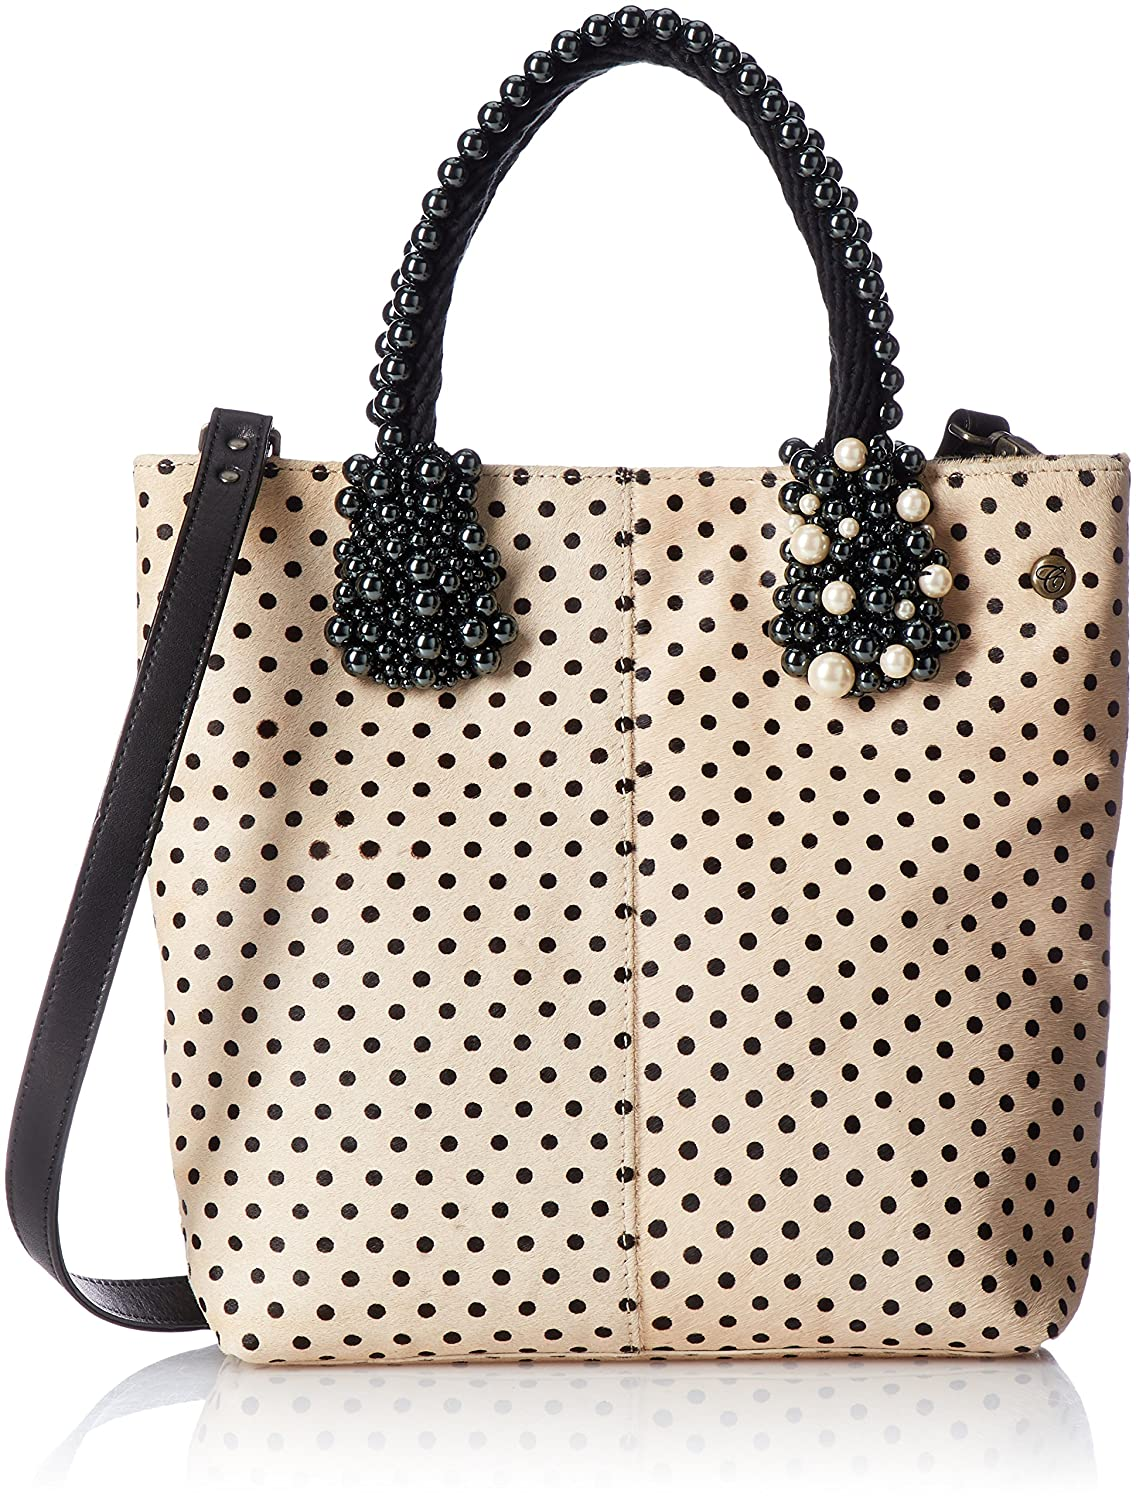 [カルネ] Fur Leather × Rope & Pearl TotebagCE-1704-220 B0741Z8QSQ ベージュ ベージュ